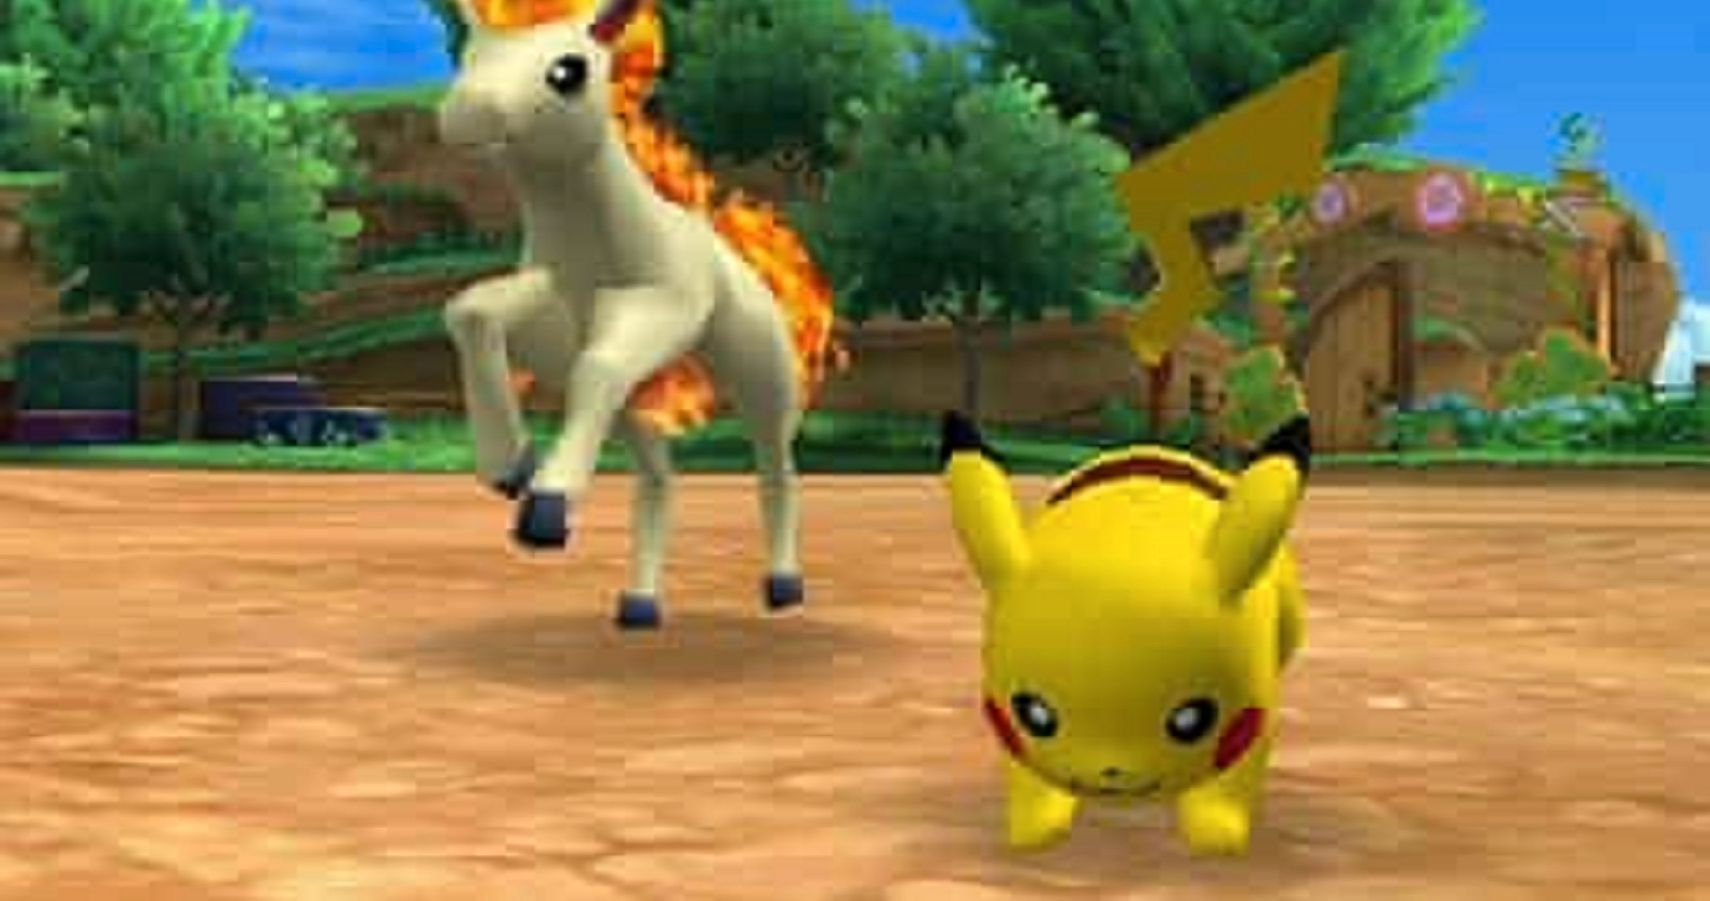 After New Pokemon Snap, We Need New PokePark